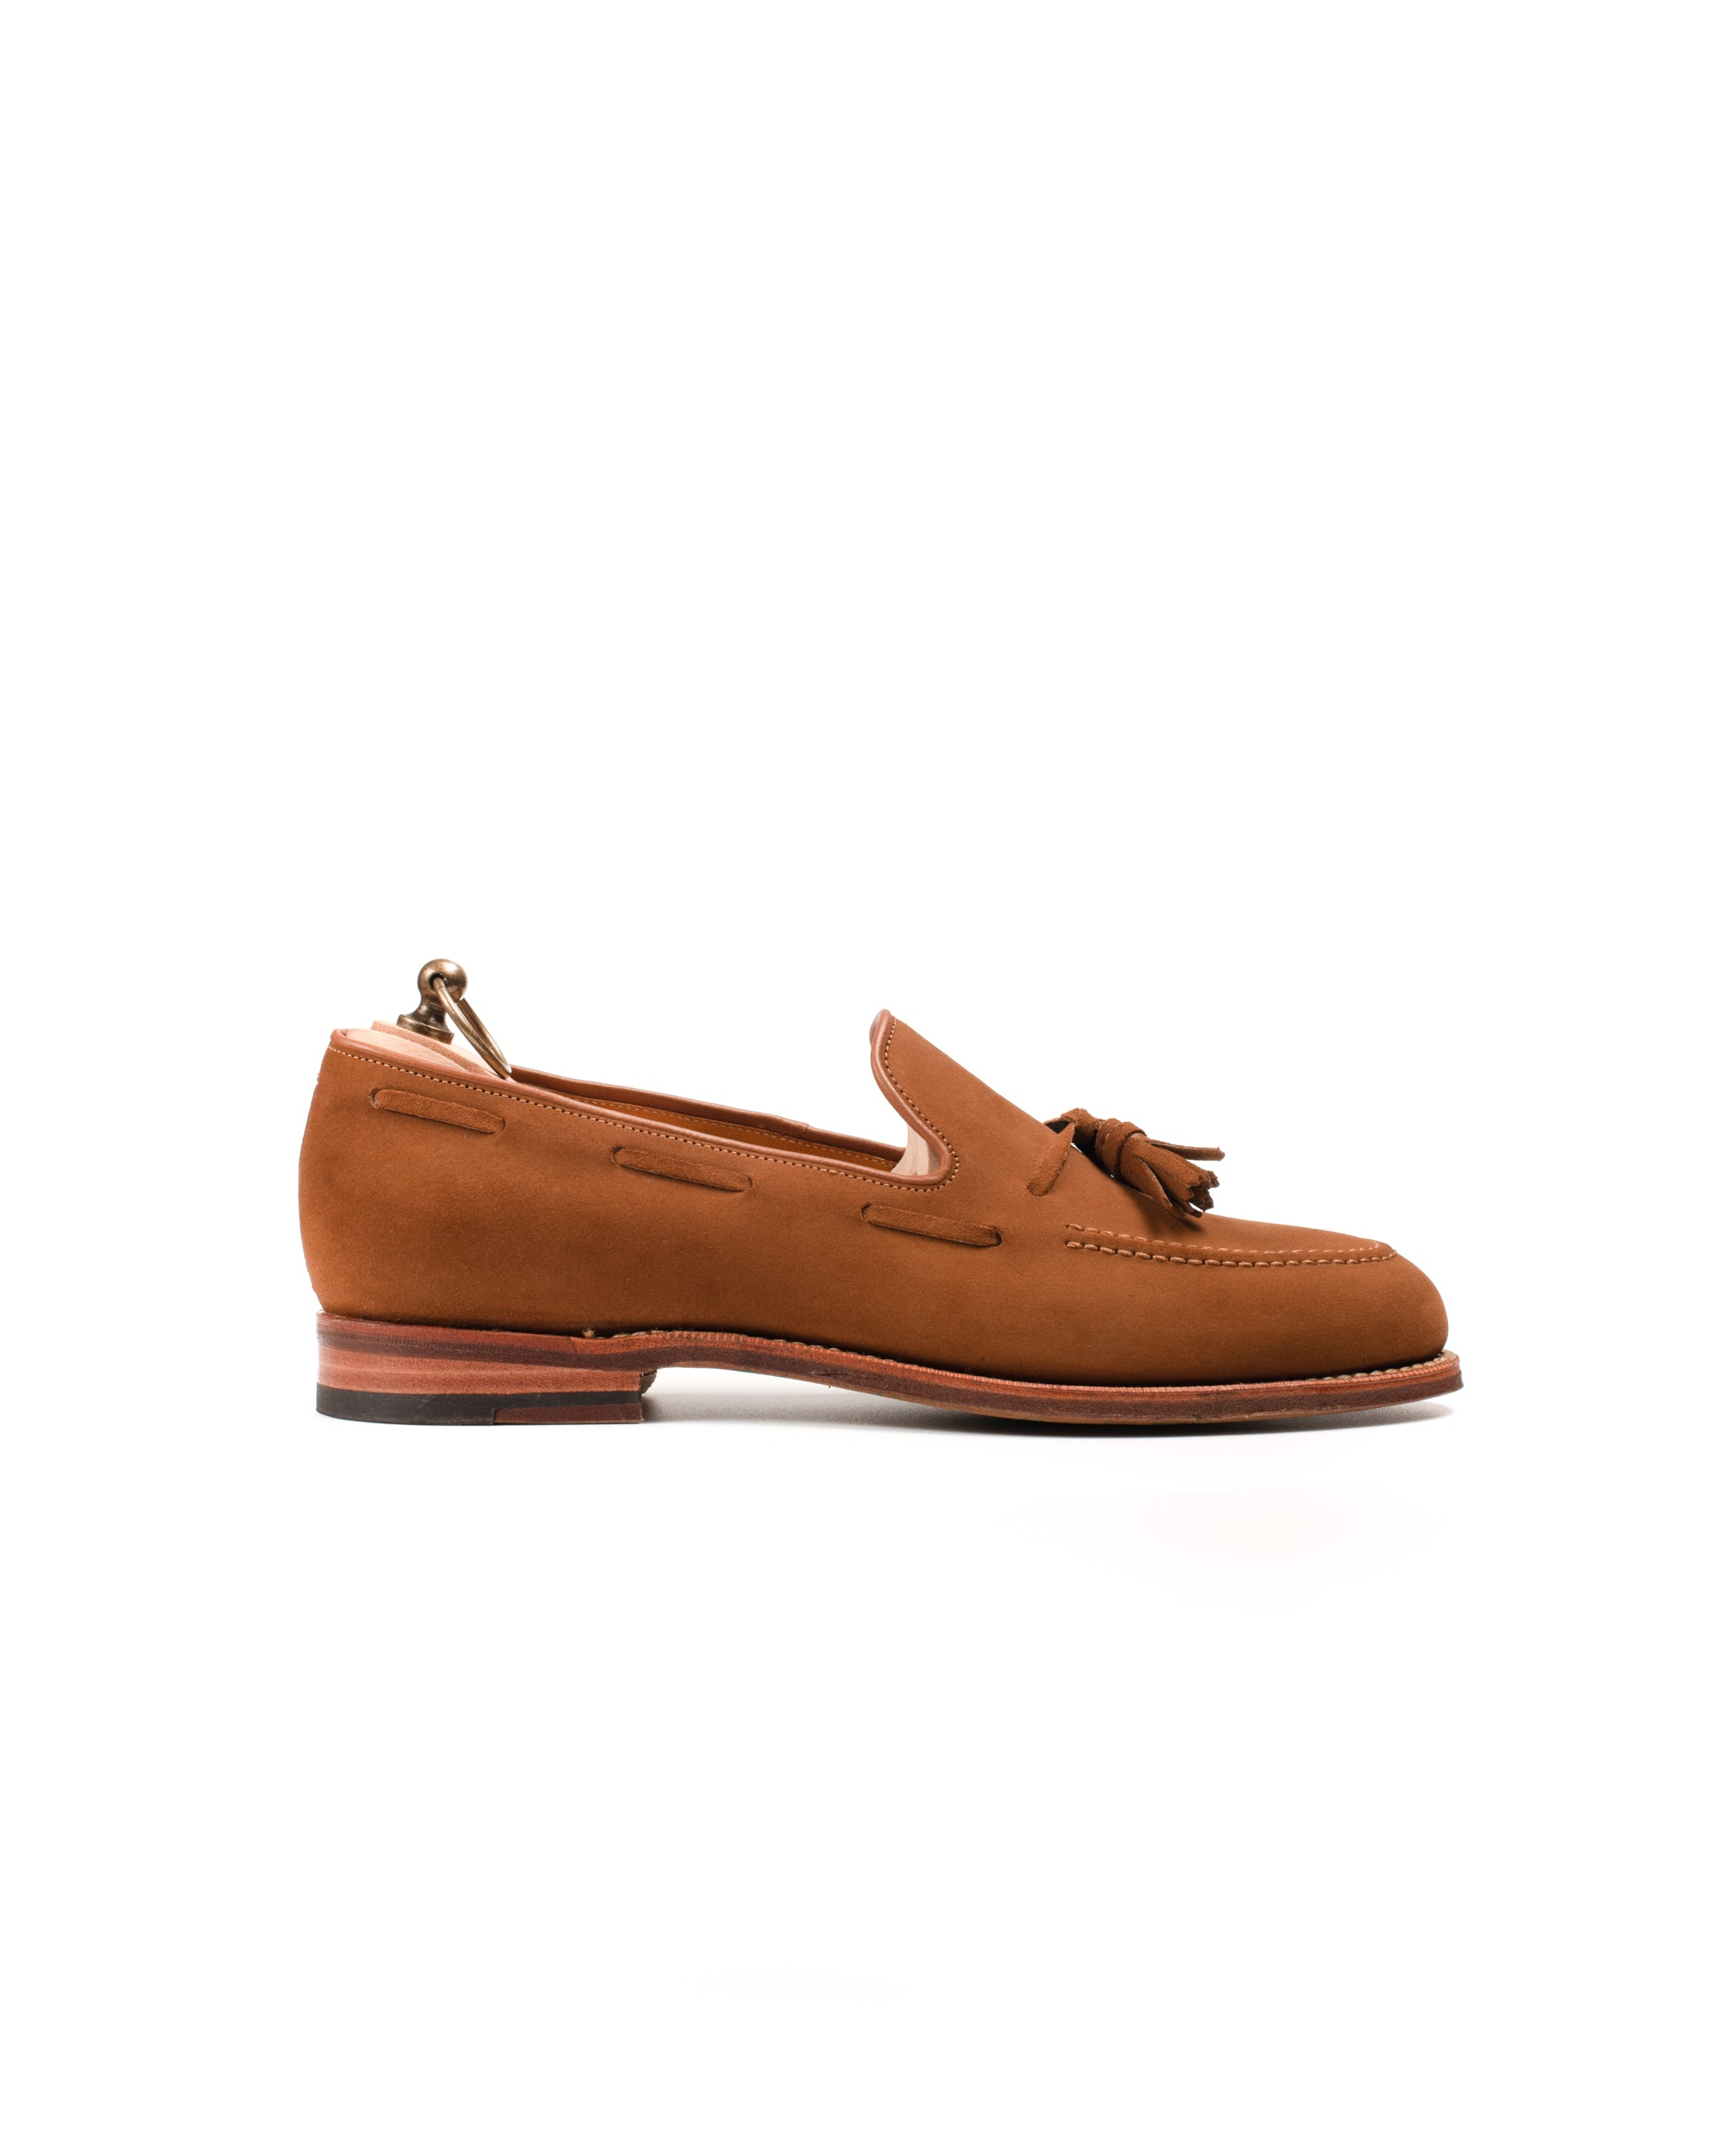 Tassel Loafer // English Suede // Snuff // Rendenbach Ledersohle